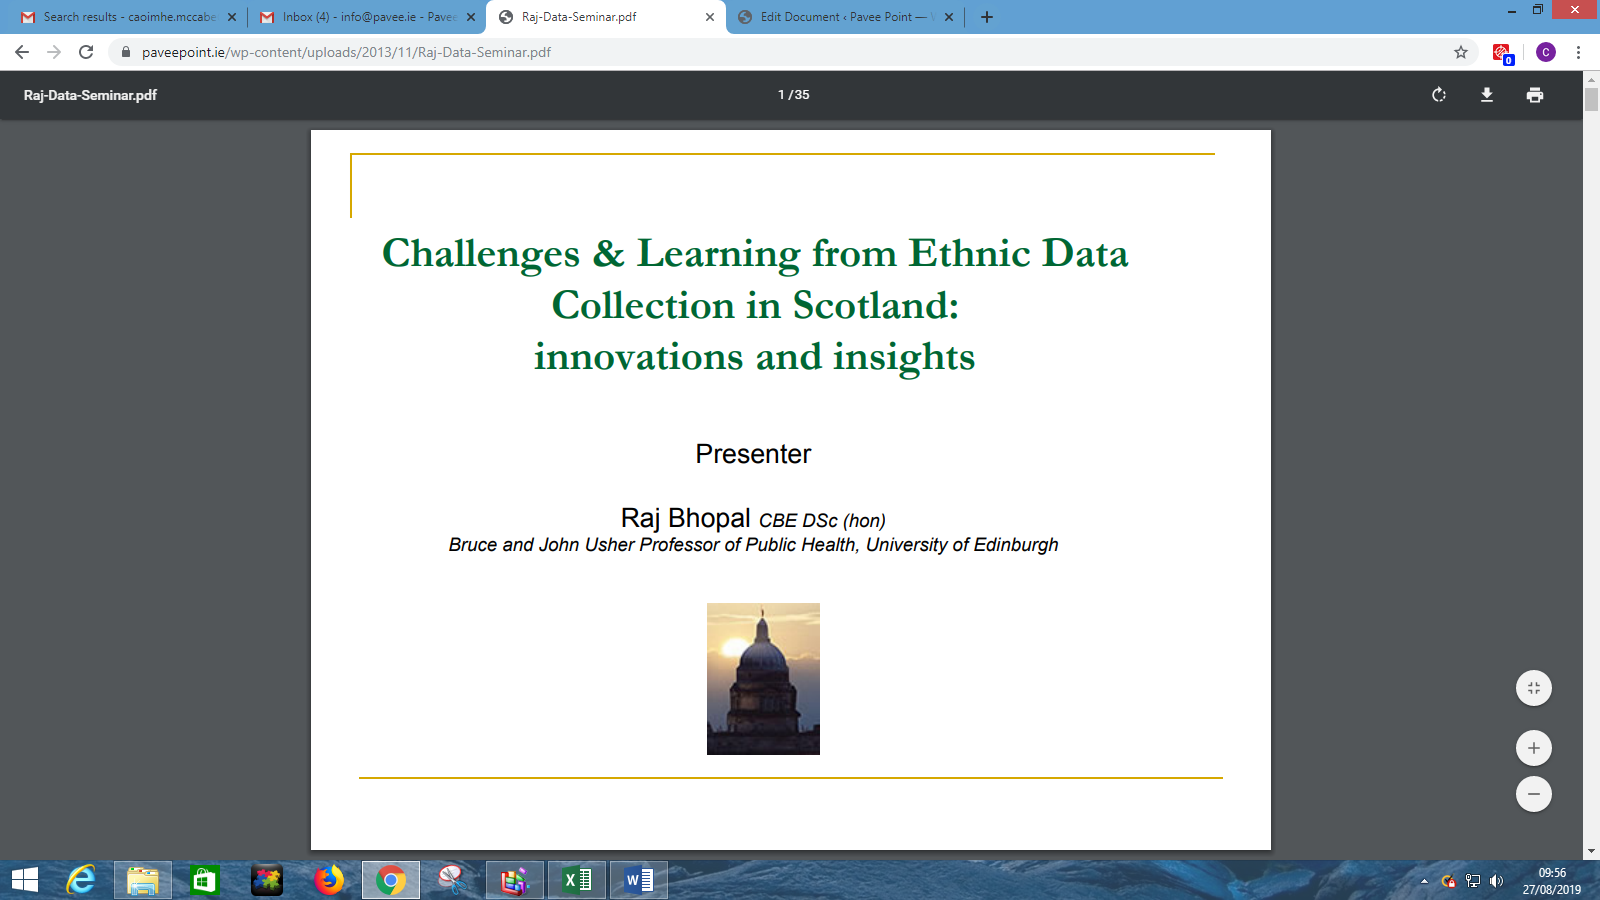 Presentation Raj Bhopal at Pavee Point/Maynooth University Ethnic Data Collection Conference 2013